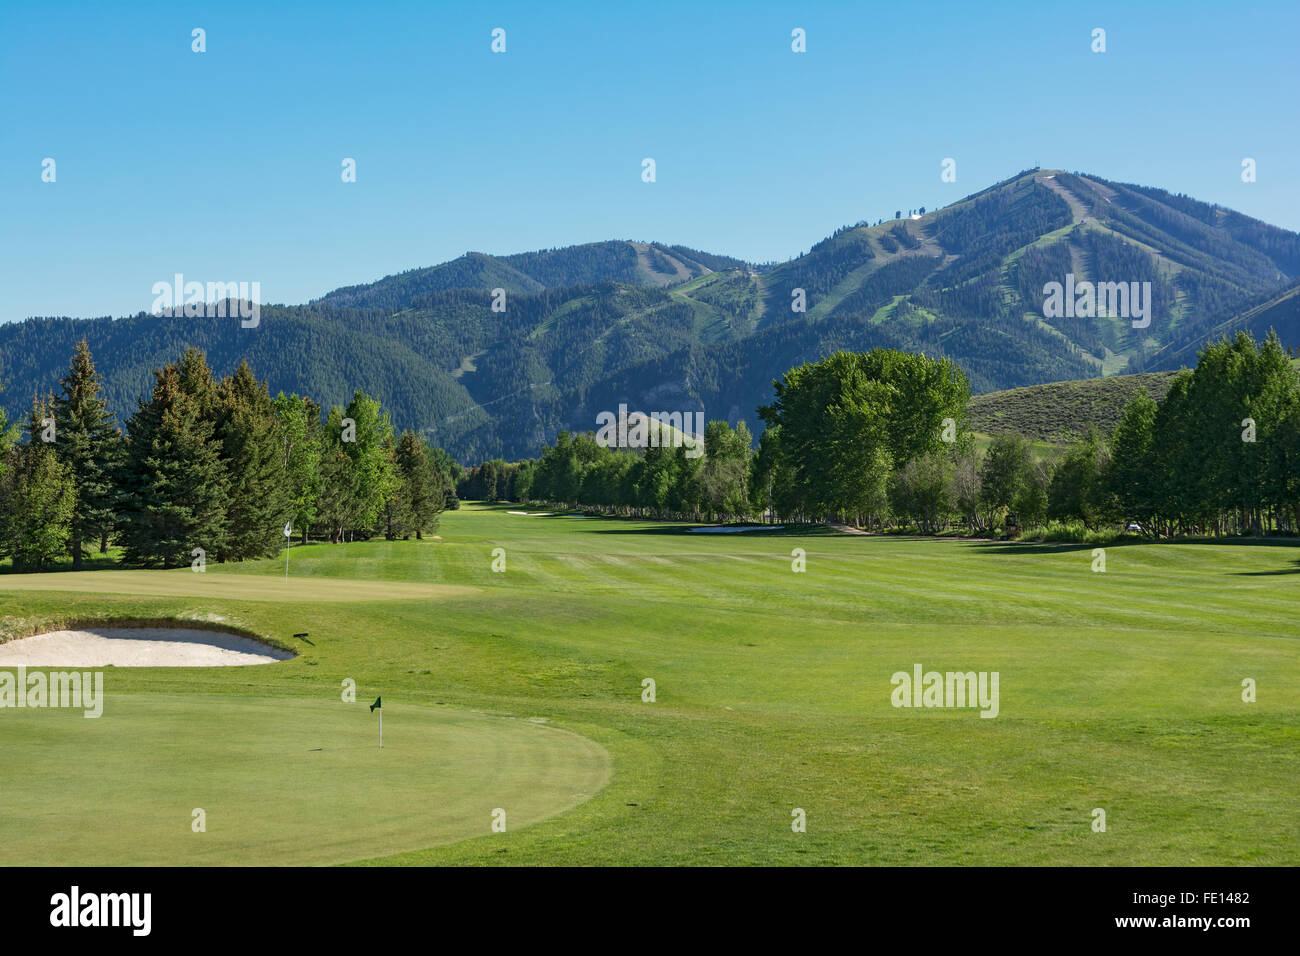 idaho, sun valley golf course, summer, bald mountain stock photo